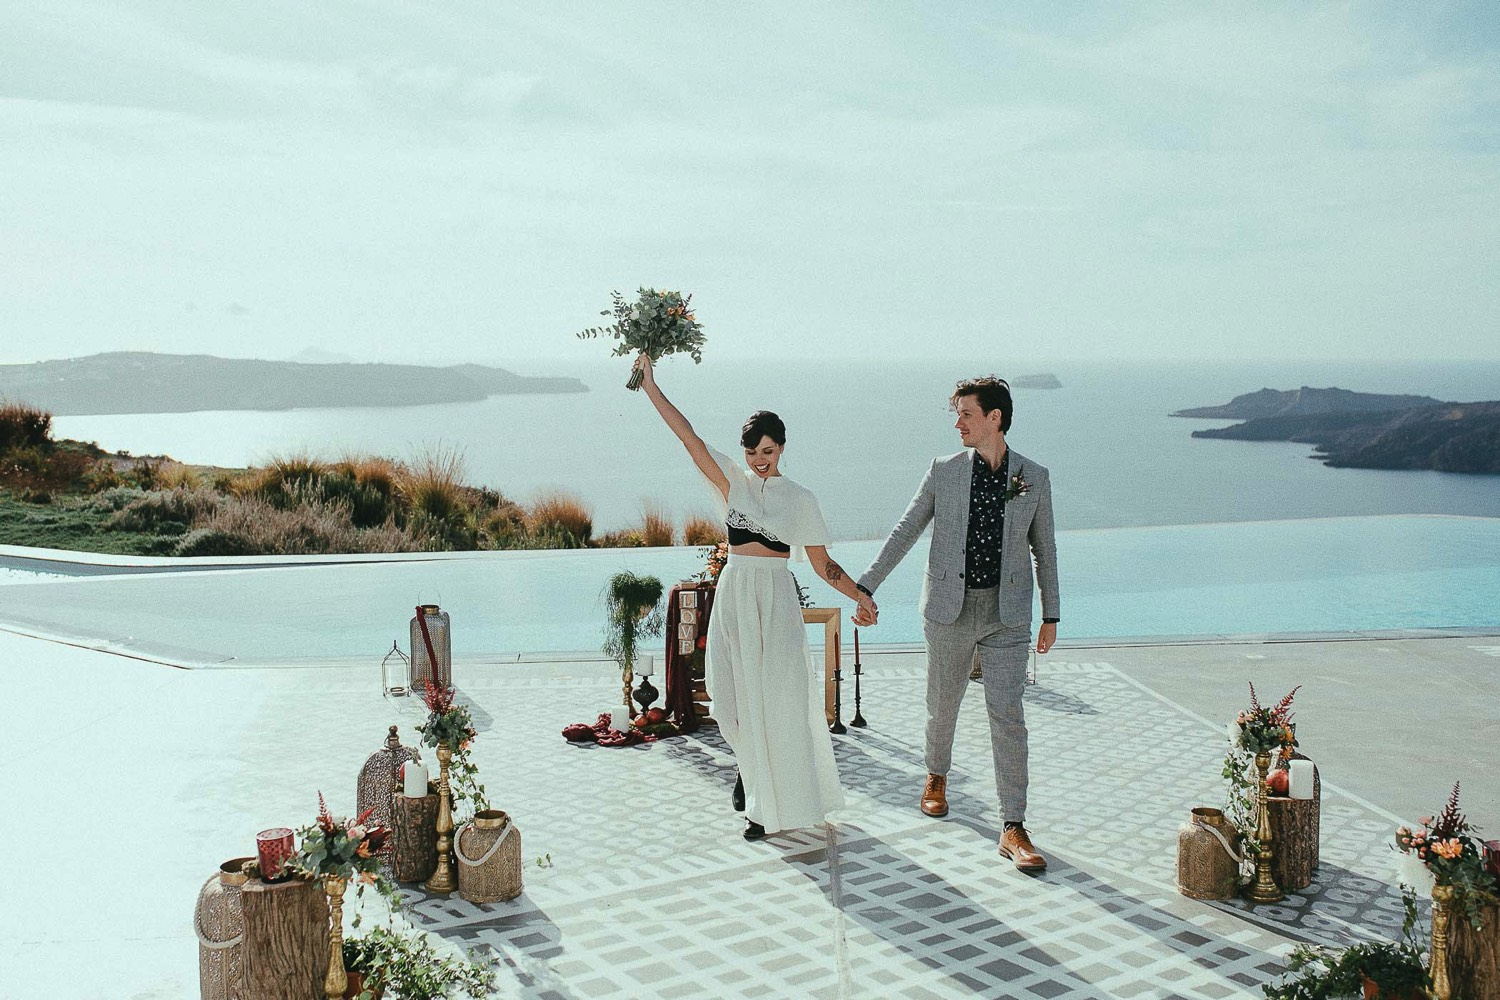 santorini-wedding-photographer21.jpg